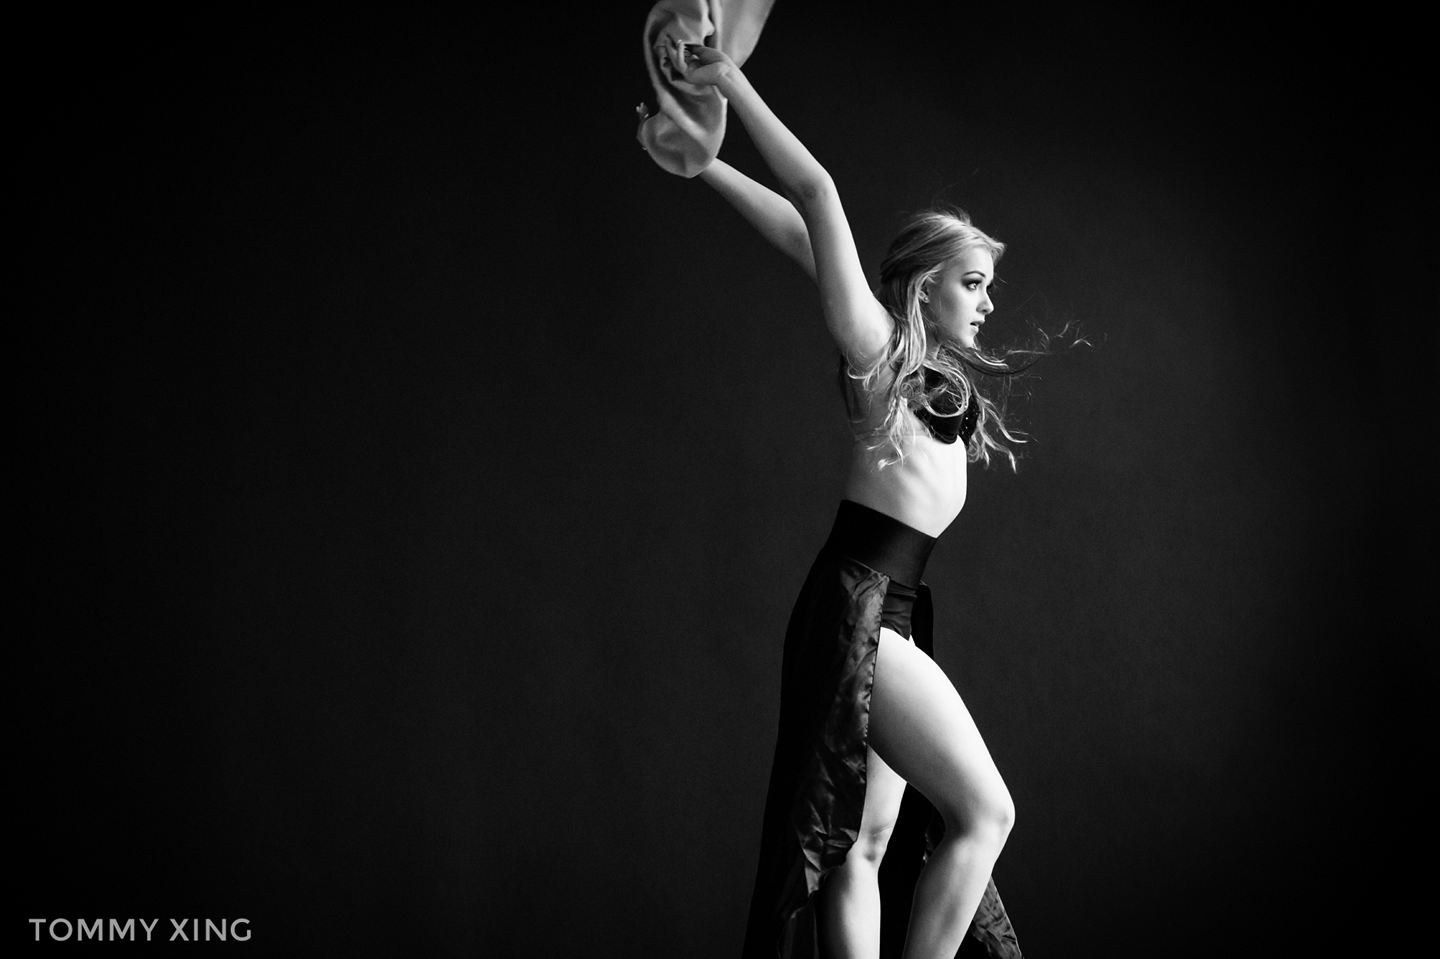 Los Angeles Dance photography - Haley - Tommy Xing06.JPG